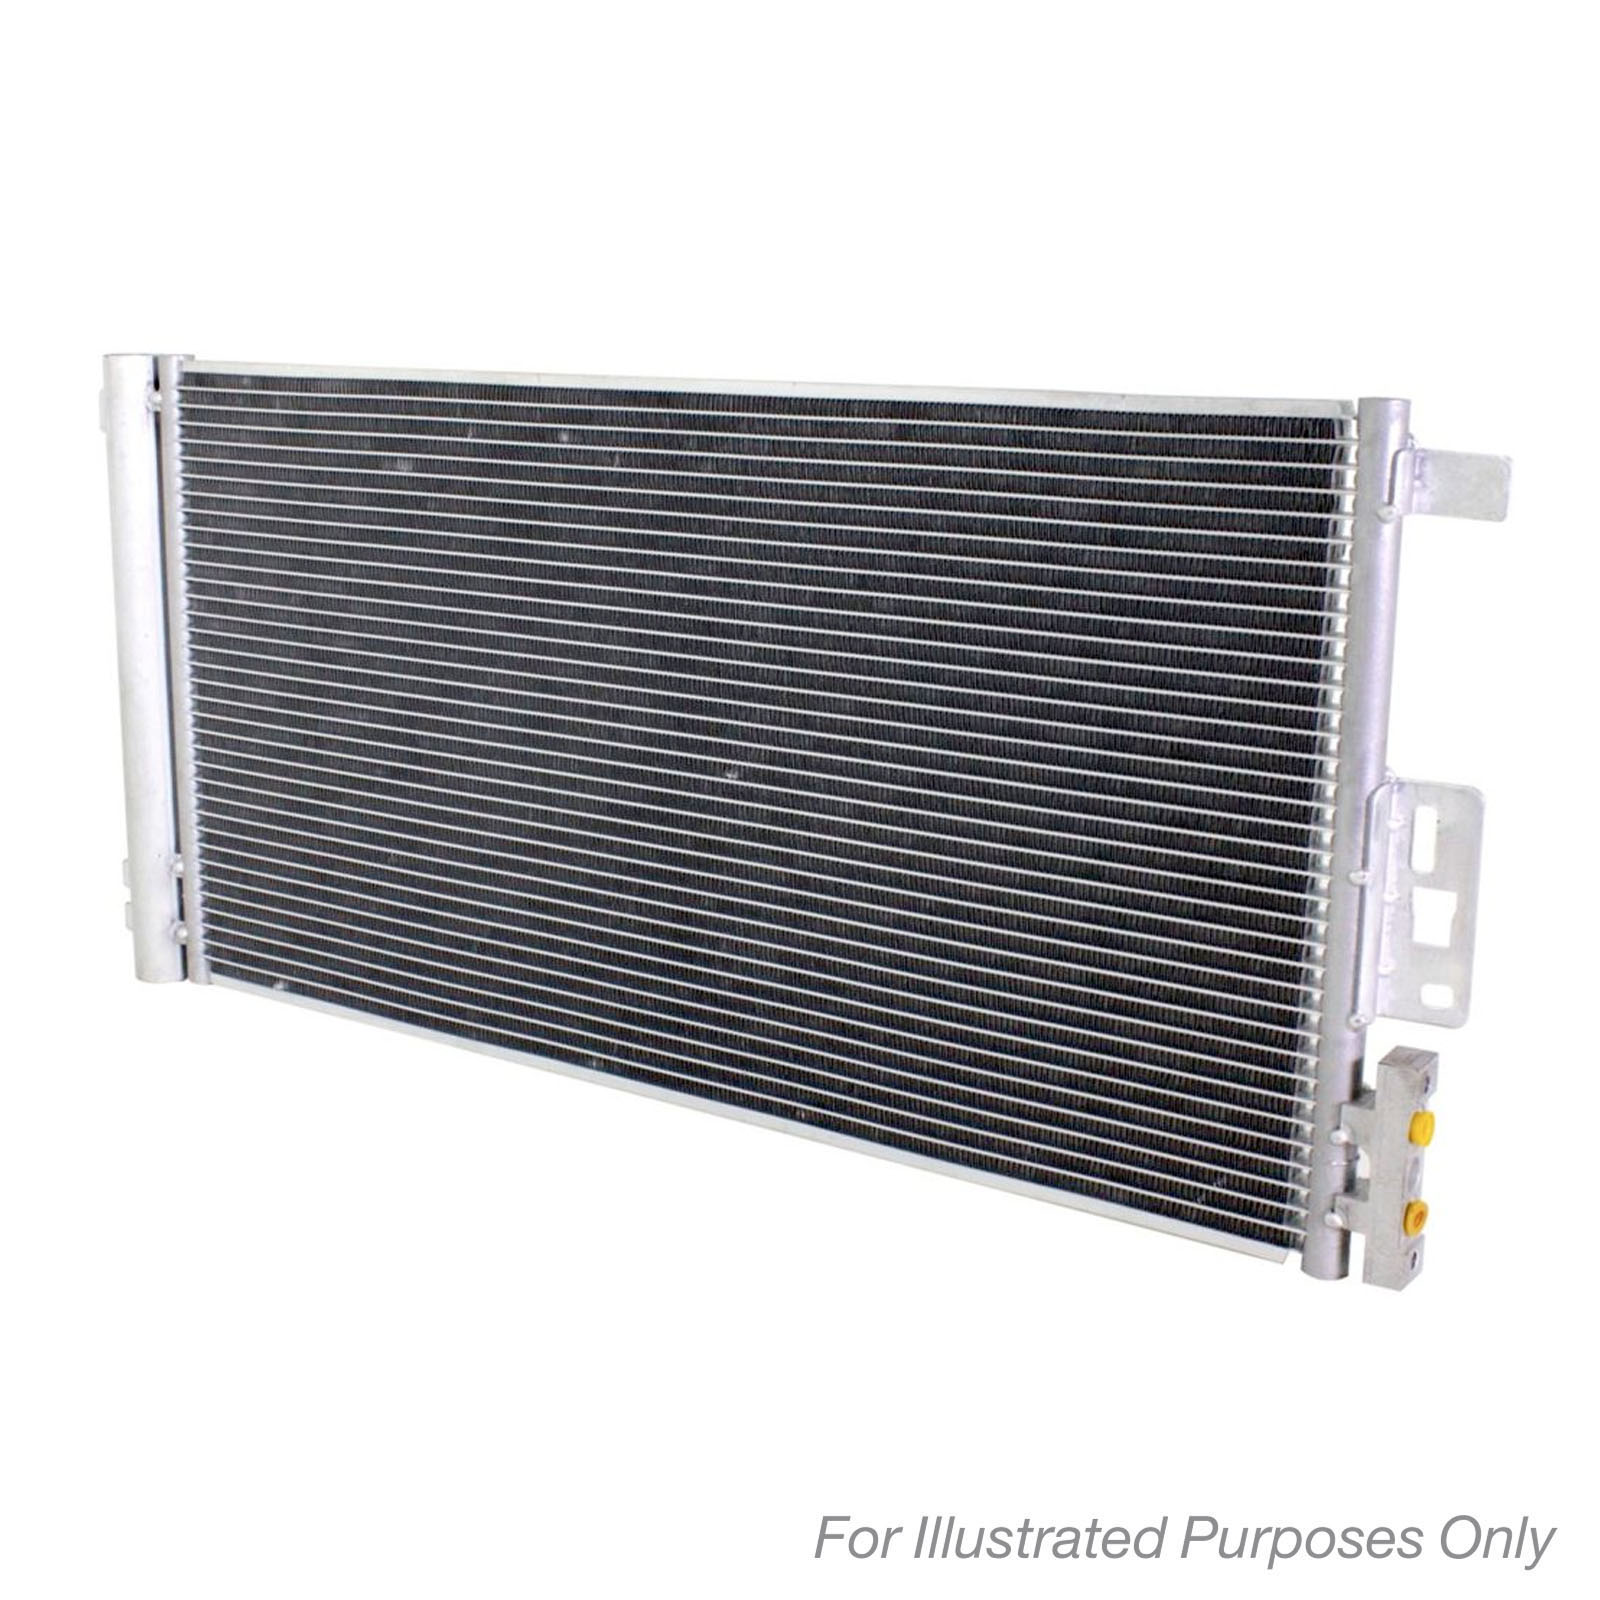 Details about Four Seasons Air Con Condenser Part No. F4 53328 #715A71